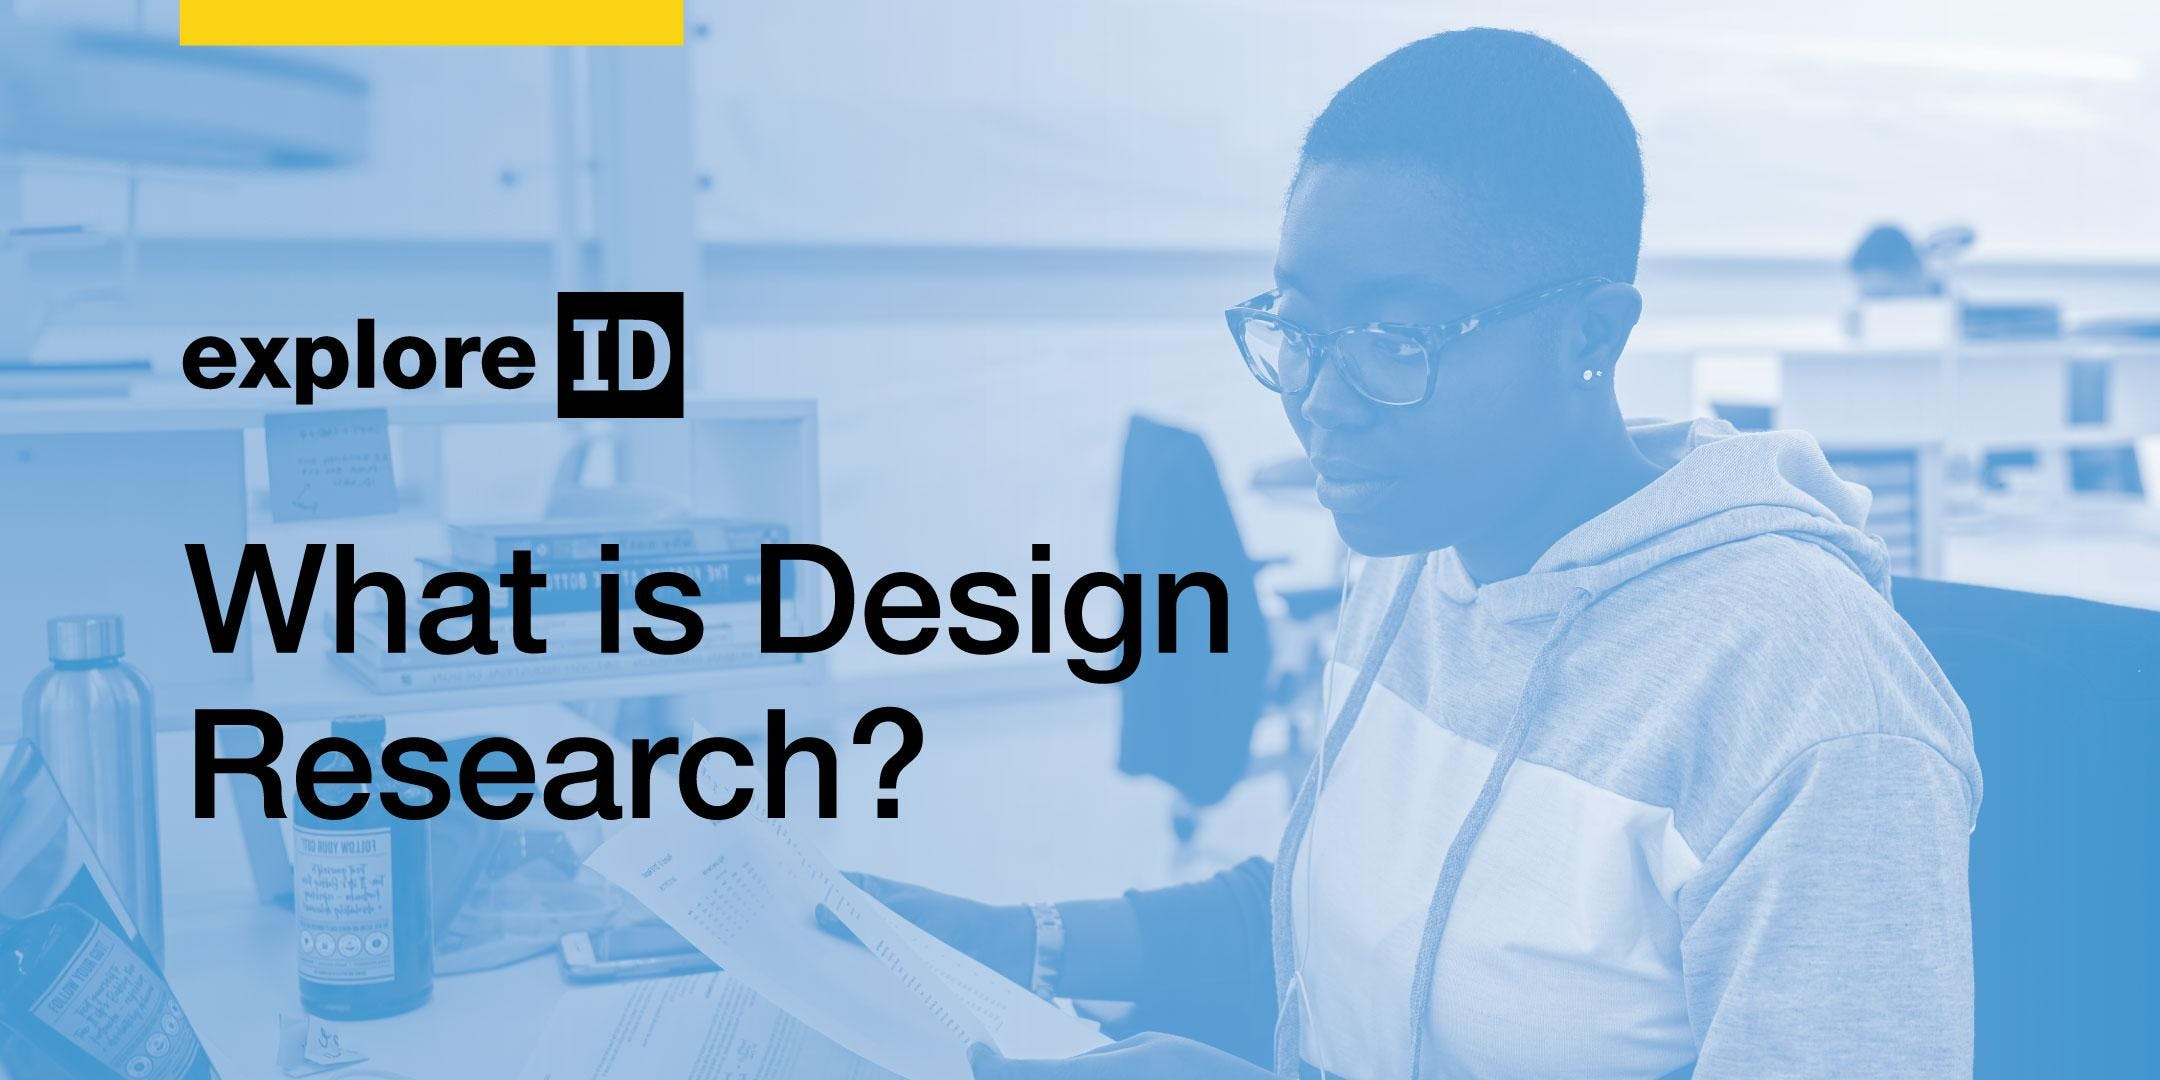 exploreID: What is Design Research?